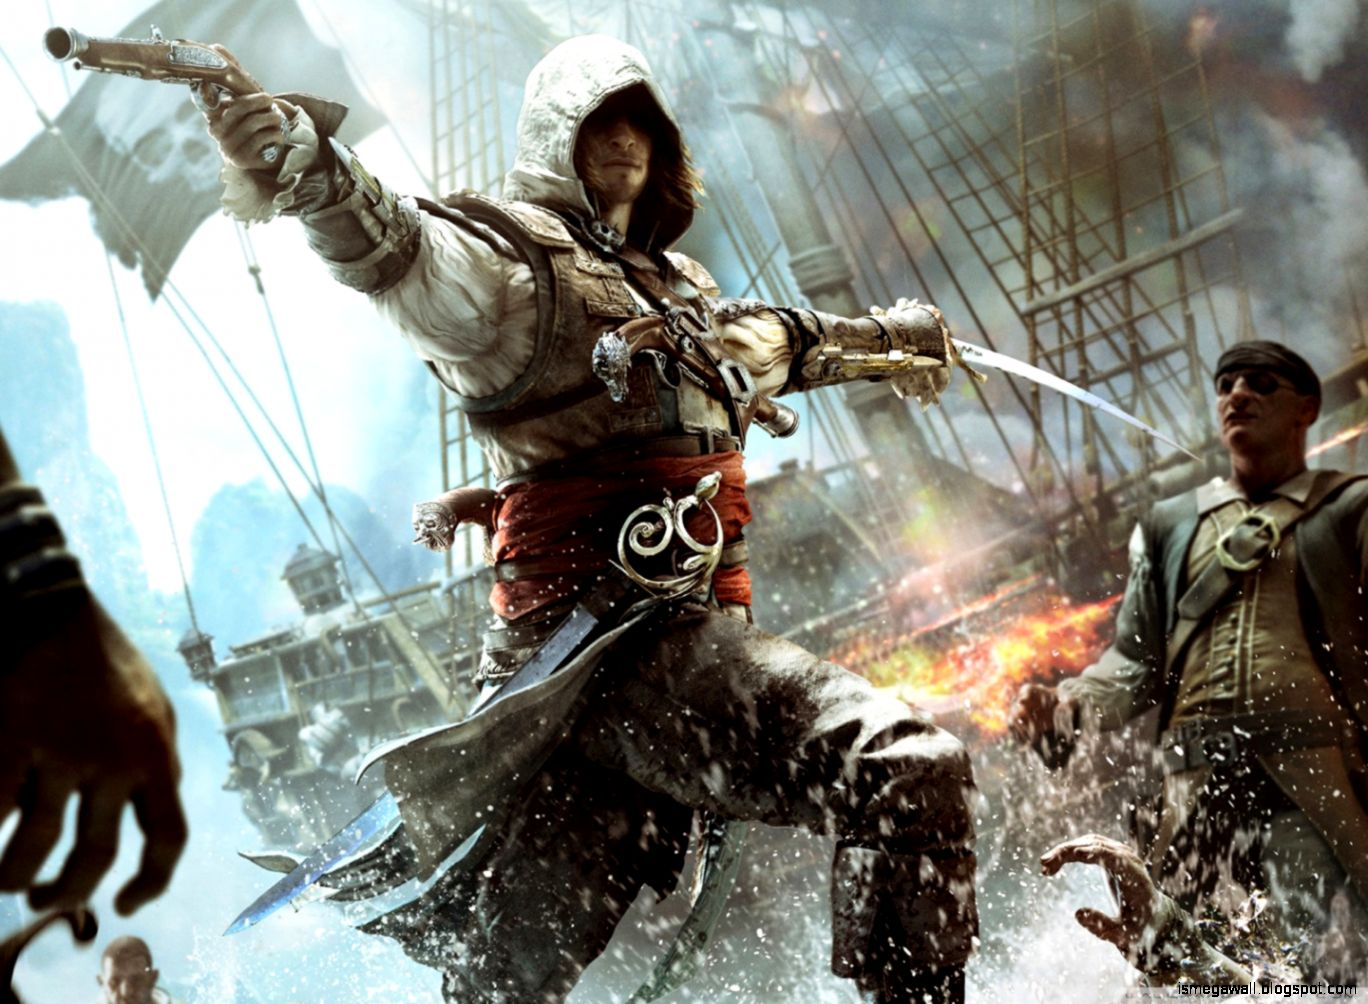 Assassins Creed IV Black Flag Game Wallpapers HD  - assassins creed iv black flag game wallpapers